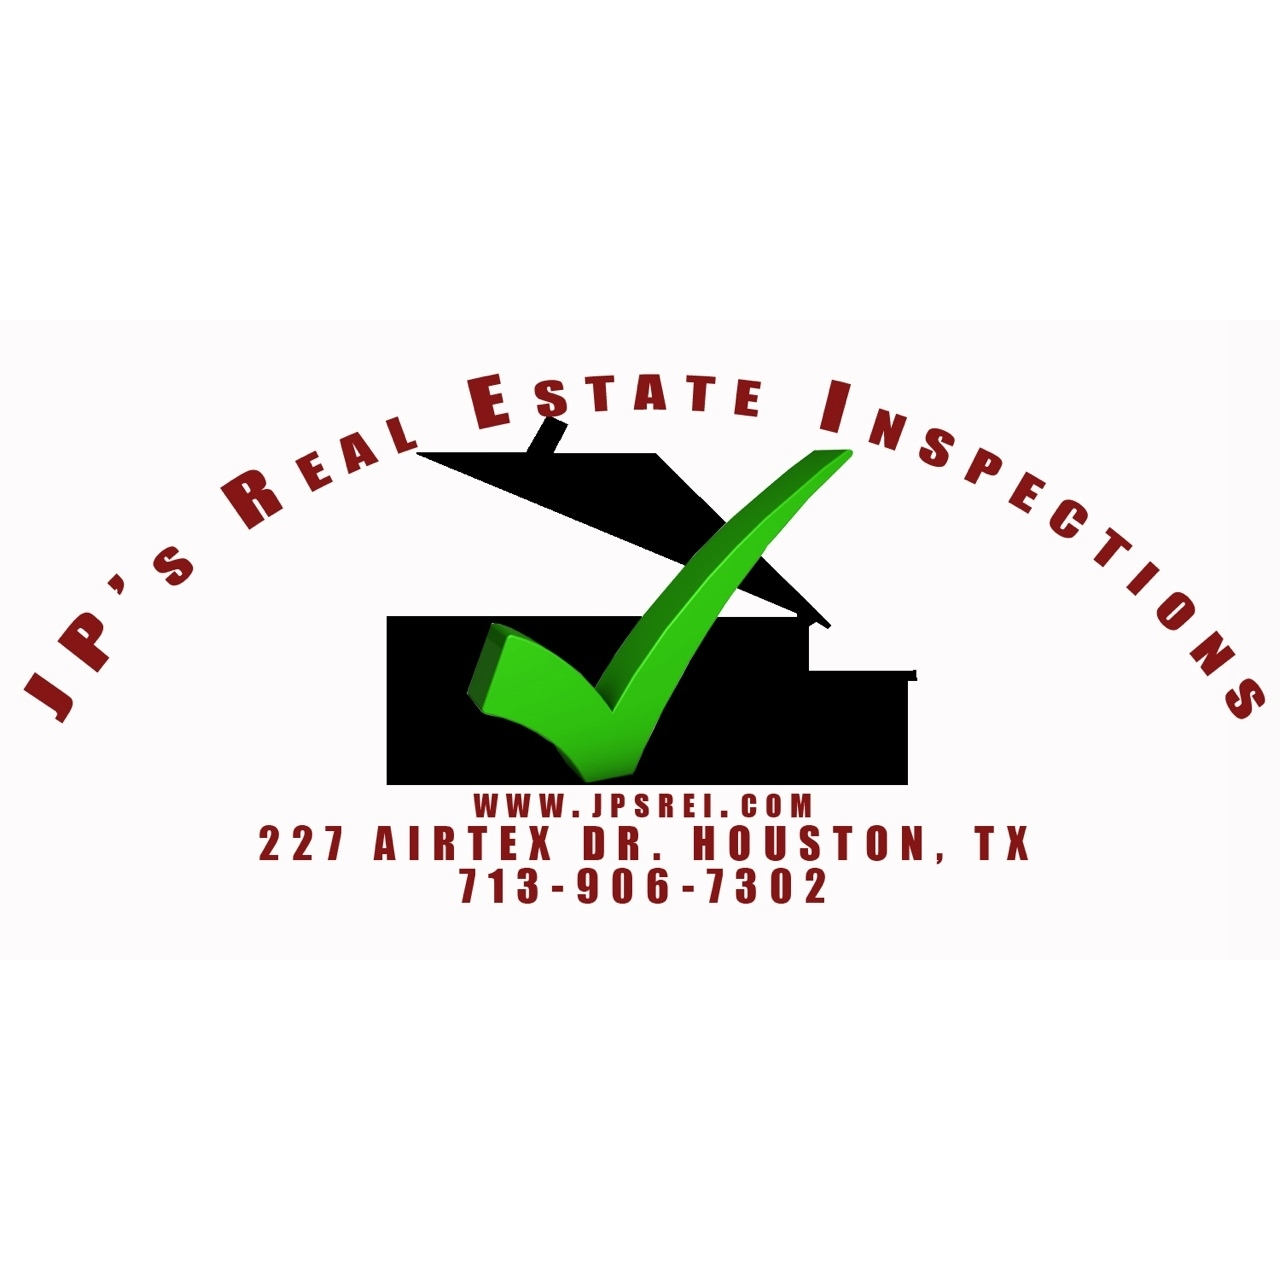 JP's Real Estate Inspections - Home & Commerical Inspections